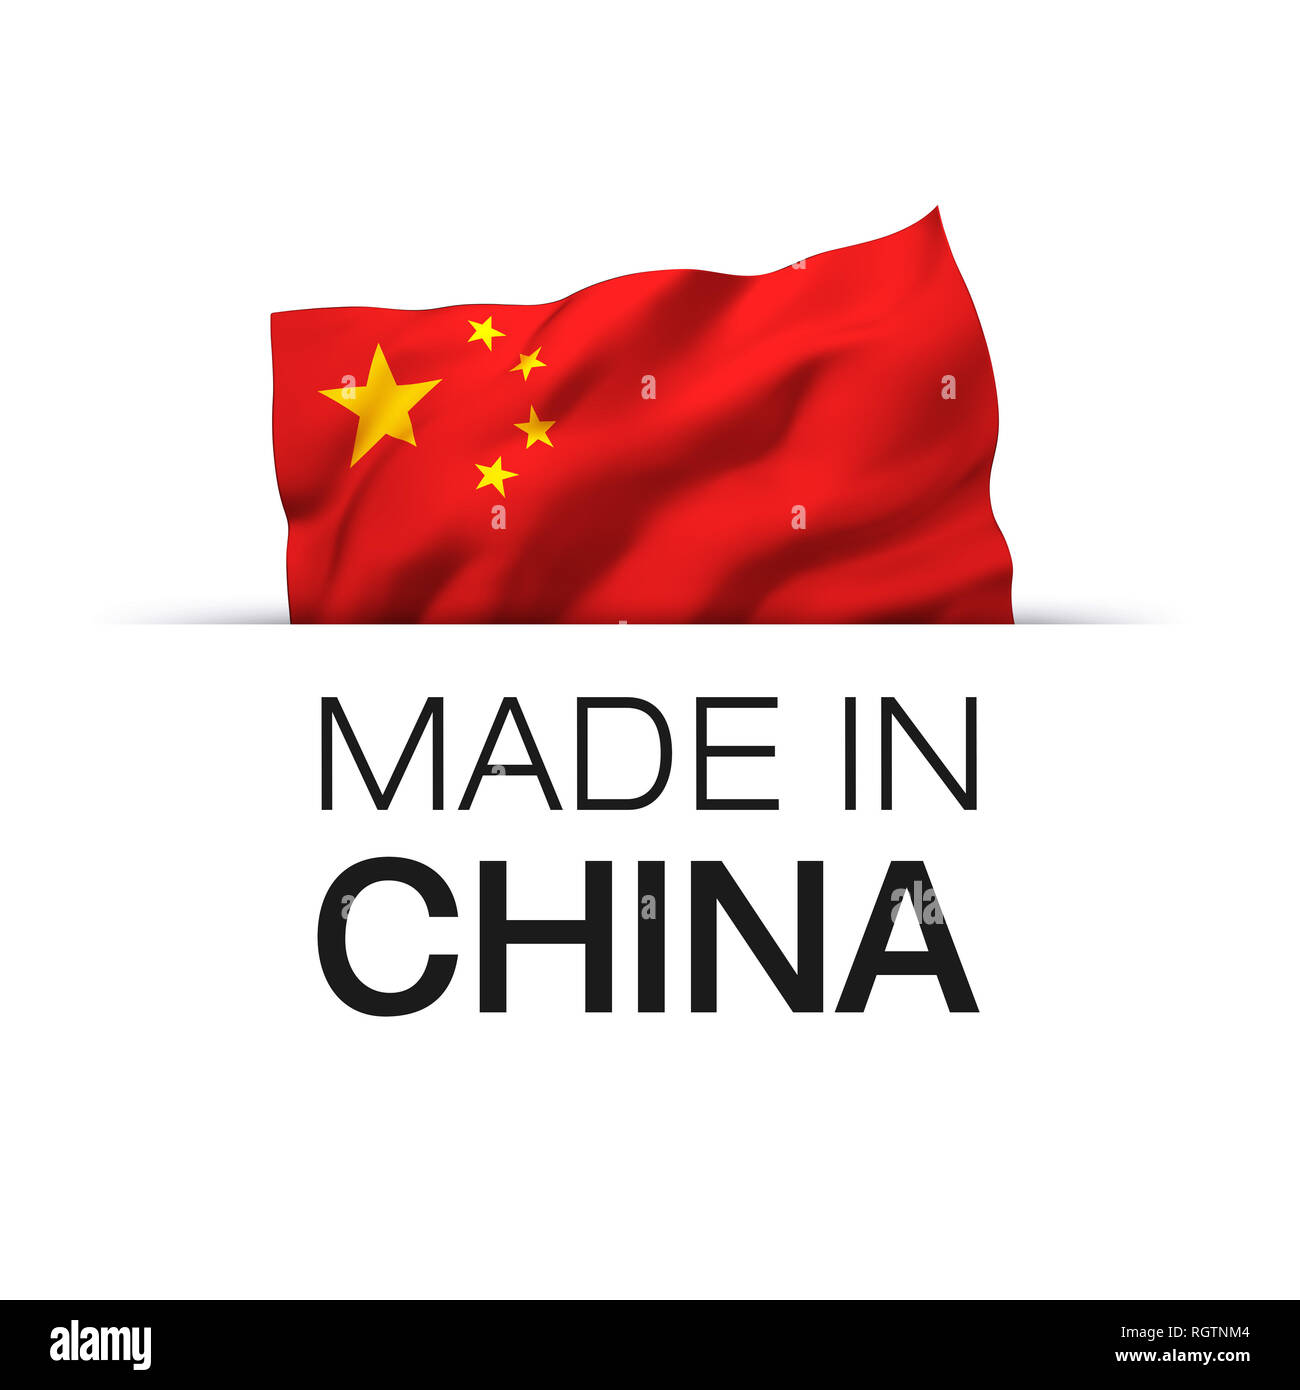 b929cd72 Made in China - Guarantee label with a waving Chinese flag. - Stock Image